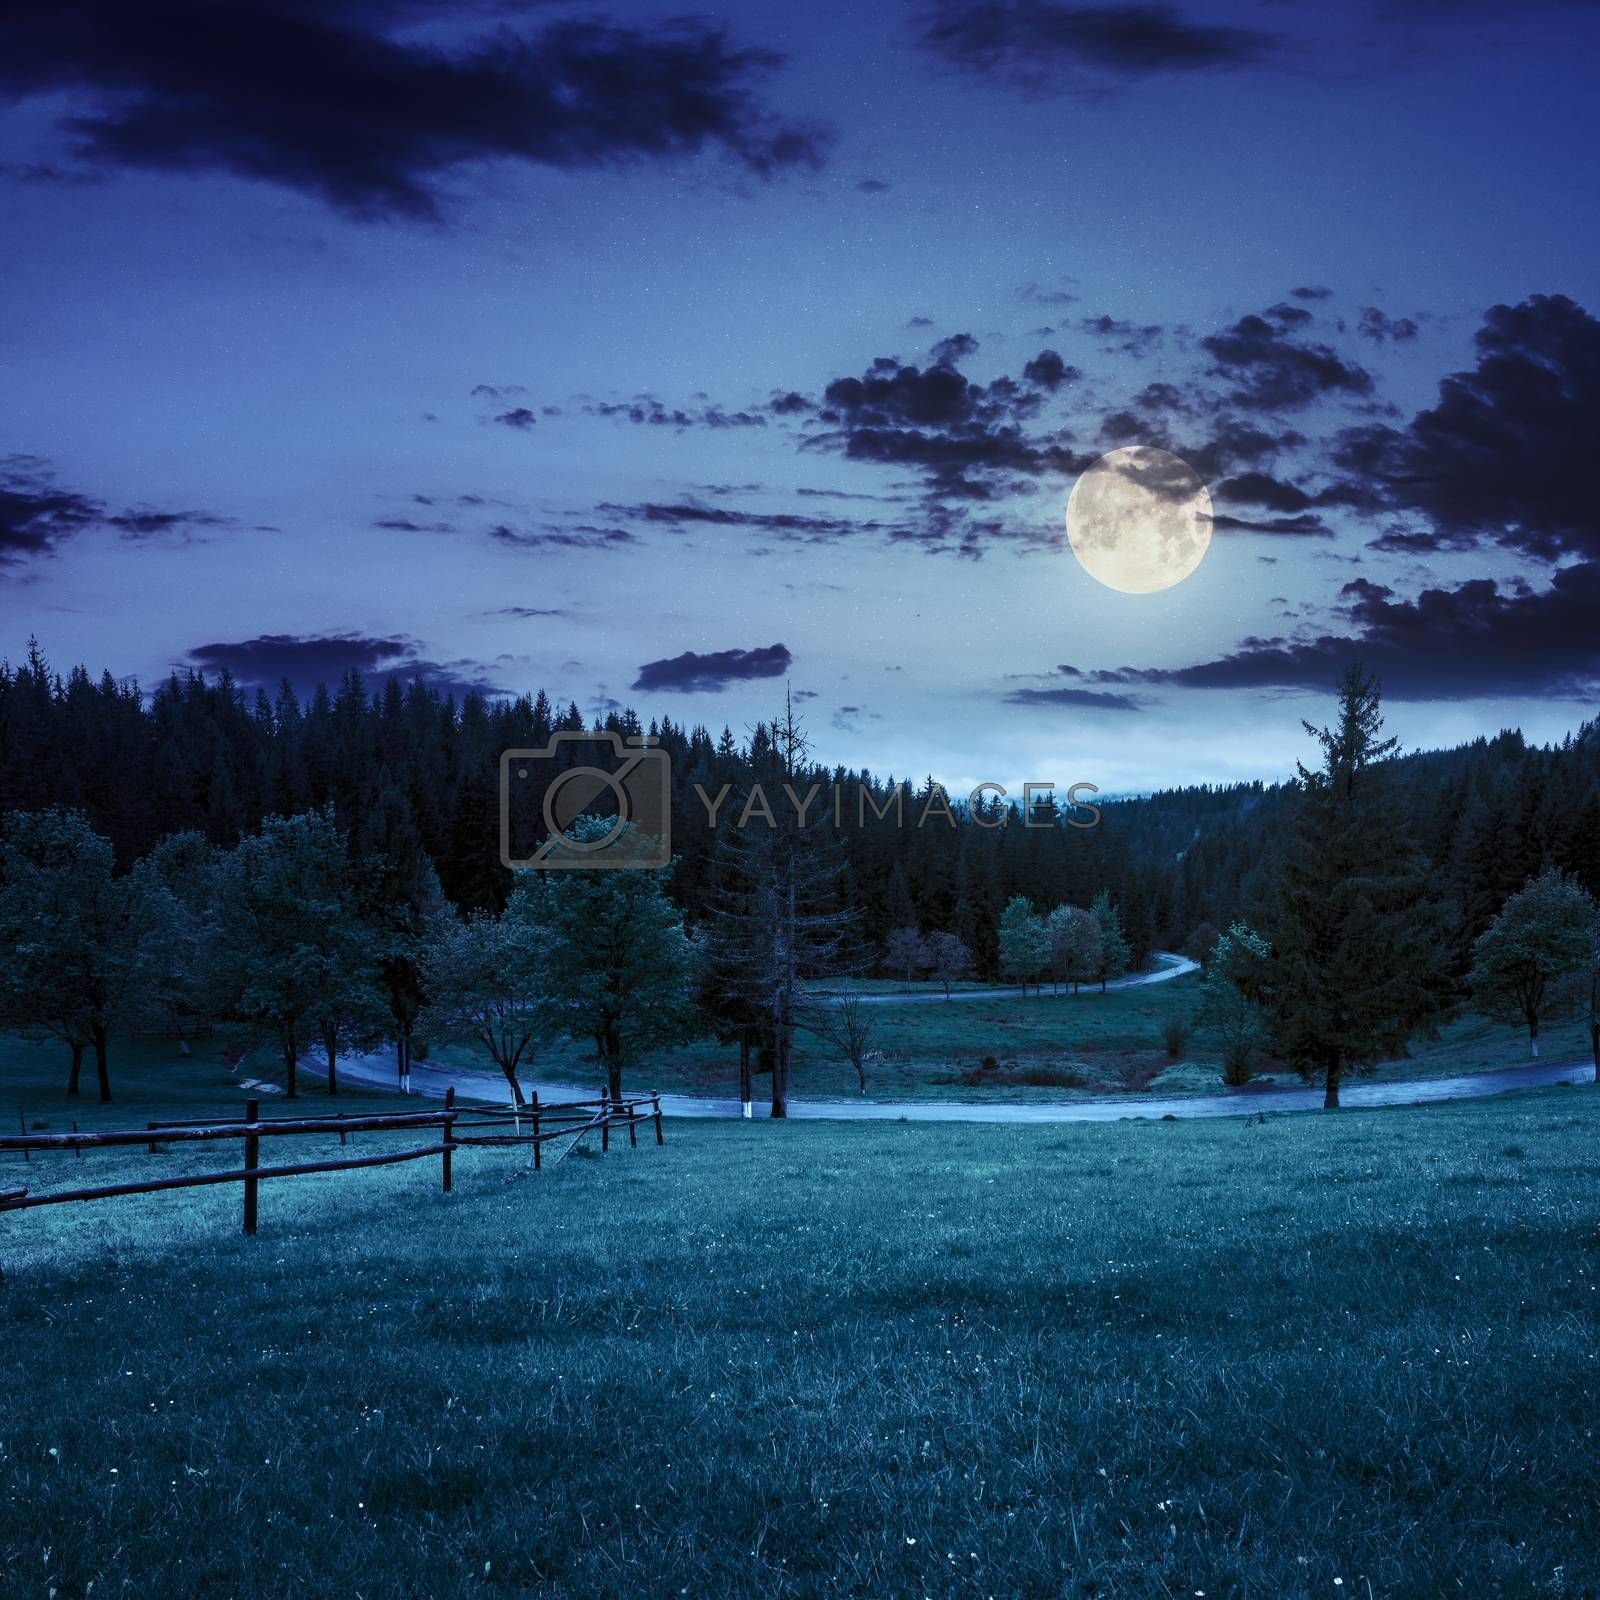 fence on meadow near forest at night by Pellinni